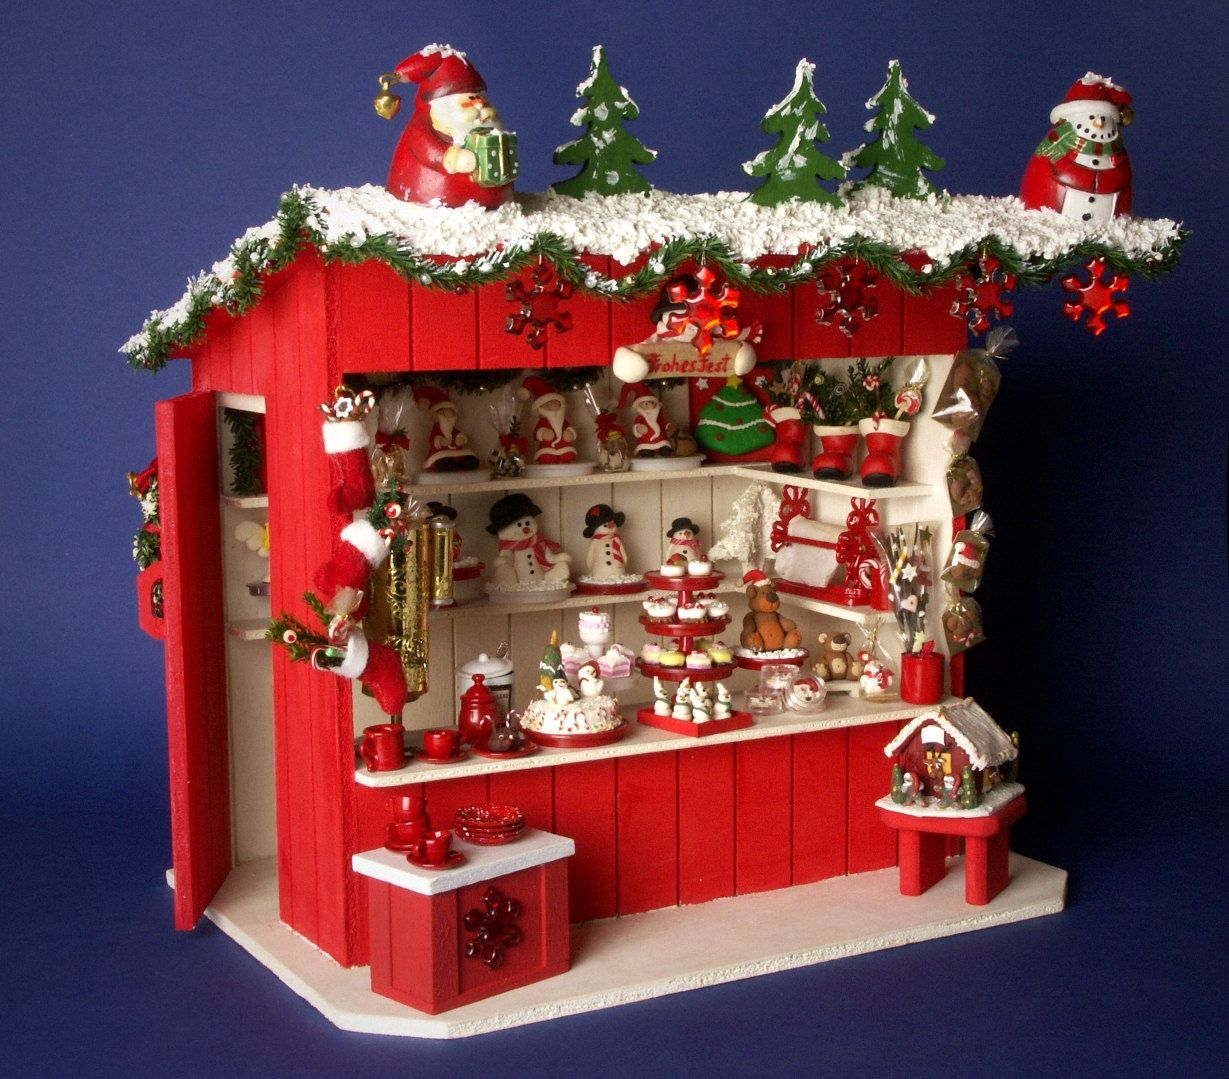 German Miniature Christmas Market Stall Cafeteria 1 12 Christmas Market Stall Miniature Christmas Christmas Booth